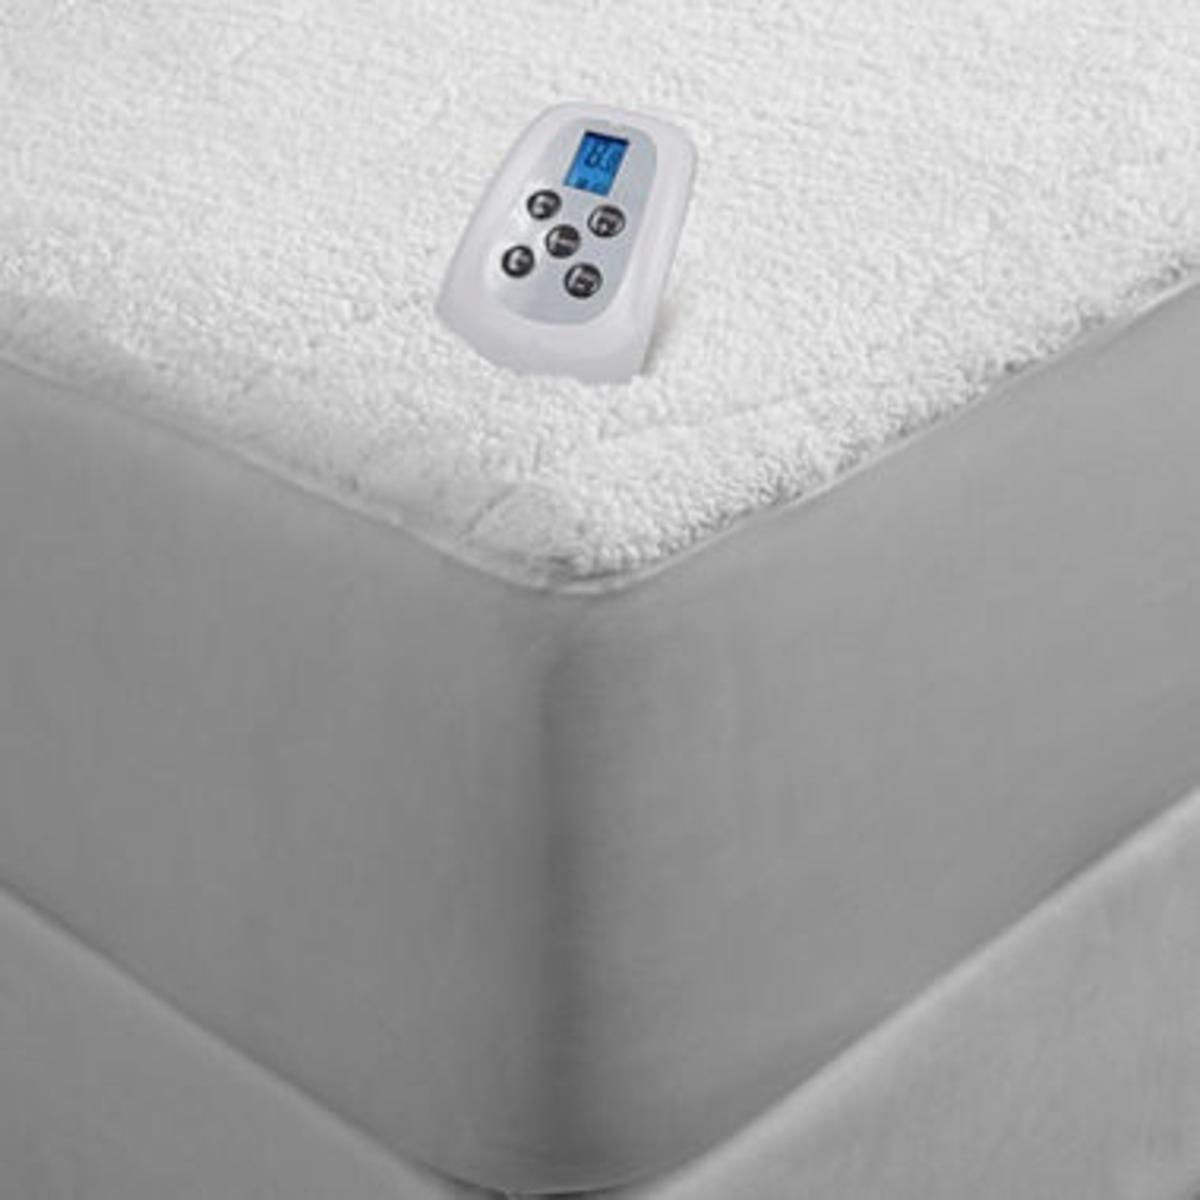 pad heat com sunbeam settings heated with mattress resistant multiple water king sizes walmart timer ip